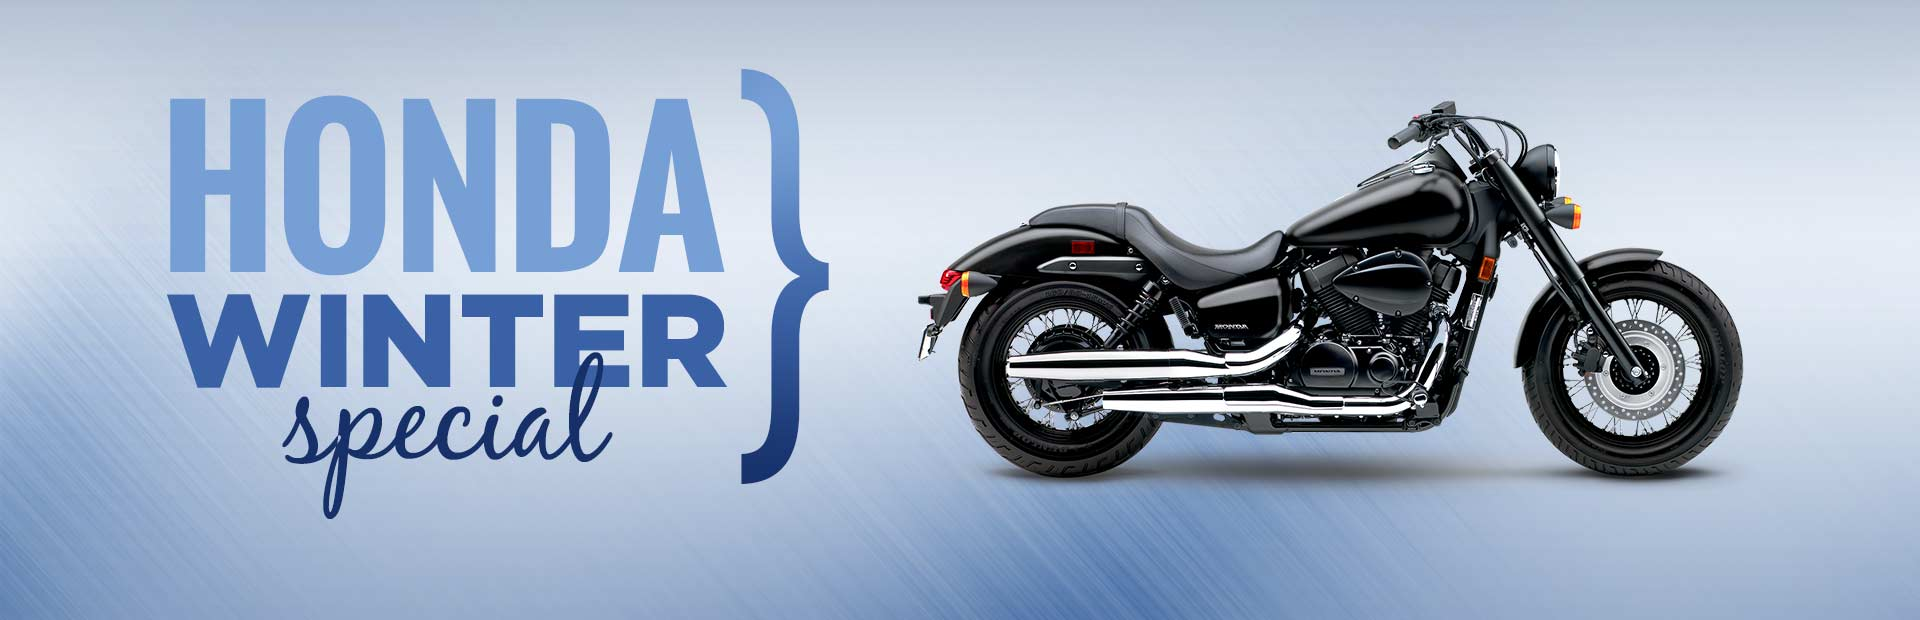 Honda Winter Special: Click here to view the lineup.